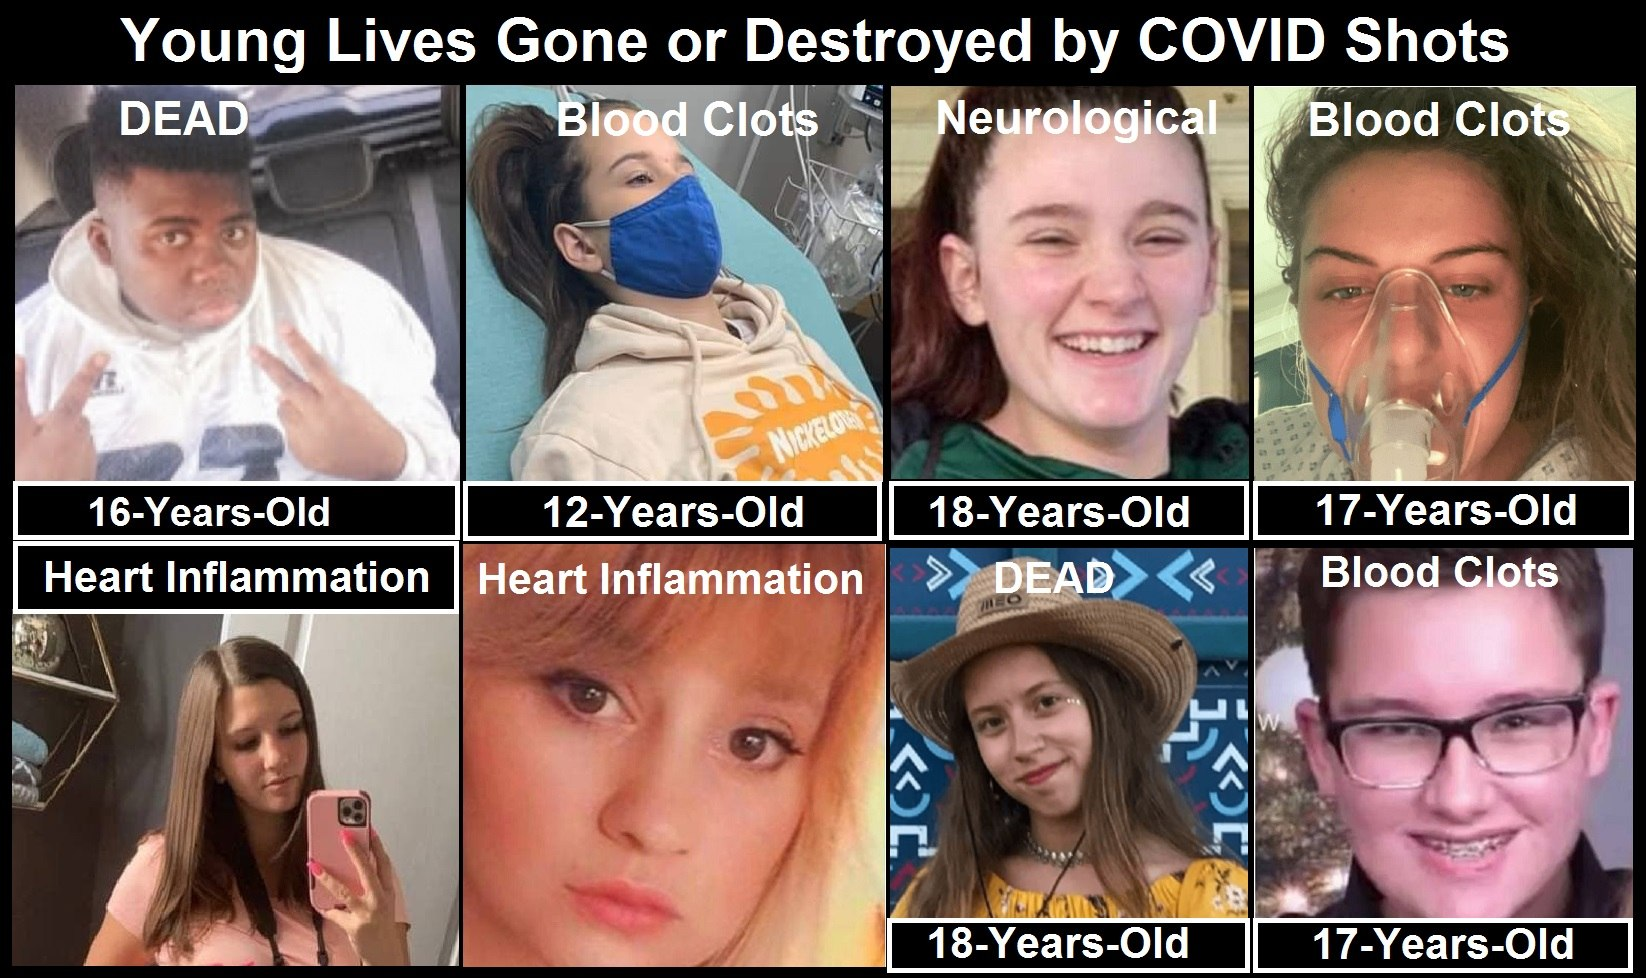 COVID Shots Are Killing and Crippling Teens in Record Numbers – Young Children Are Next Children-Dying-from-COVID-Shots